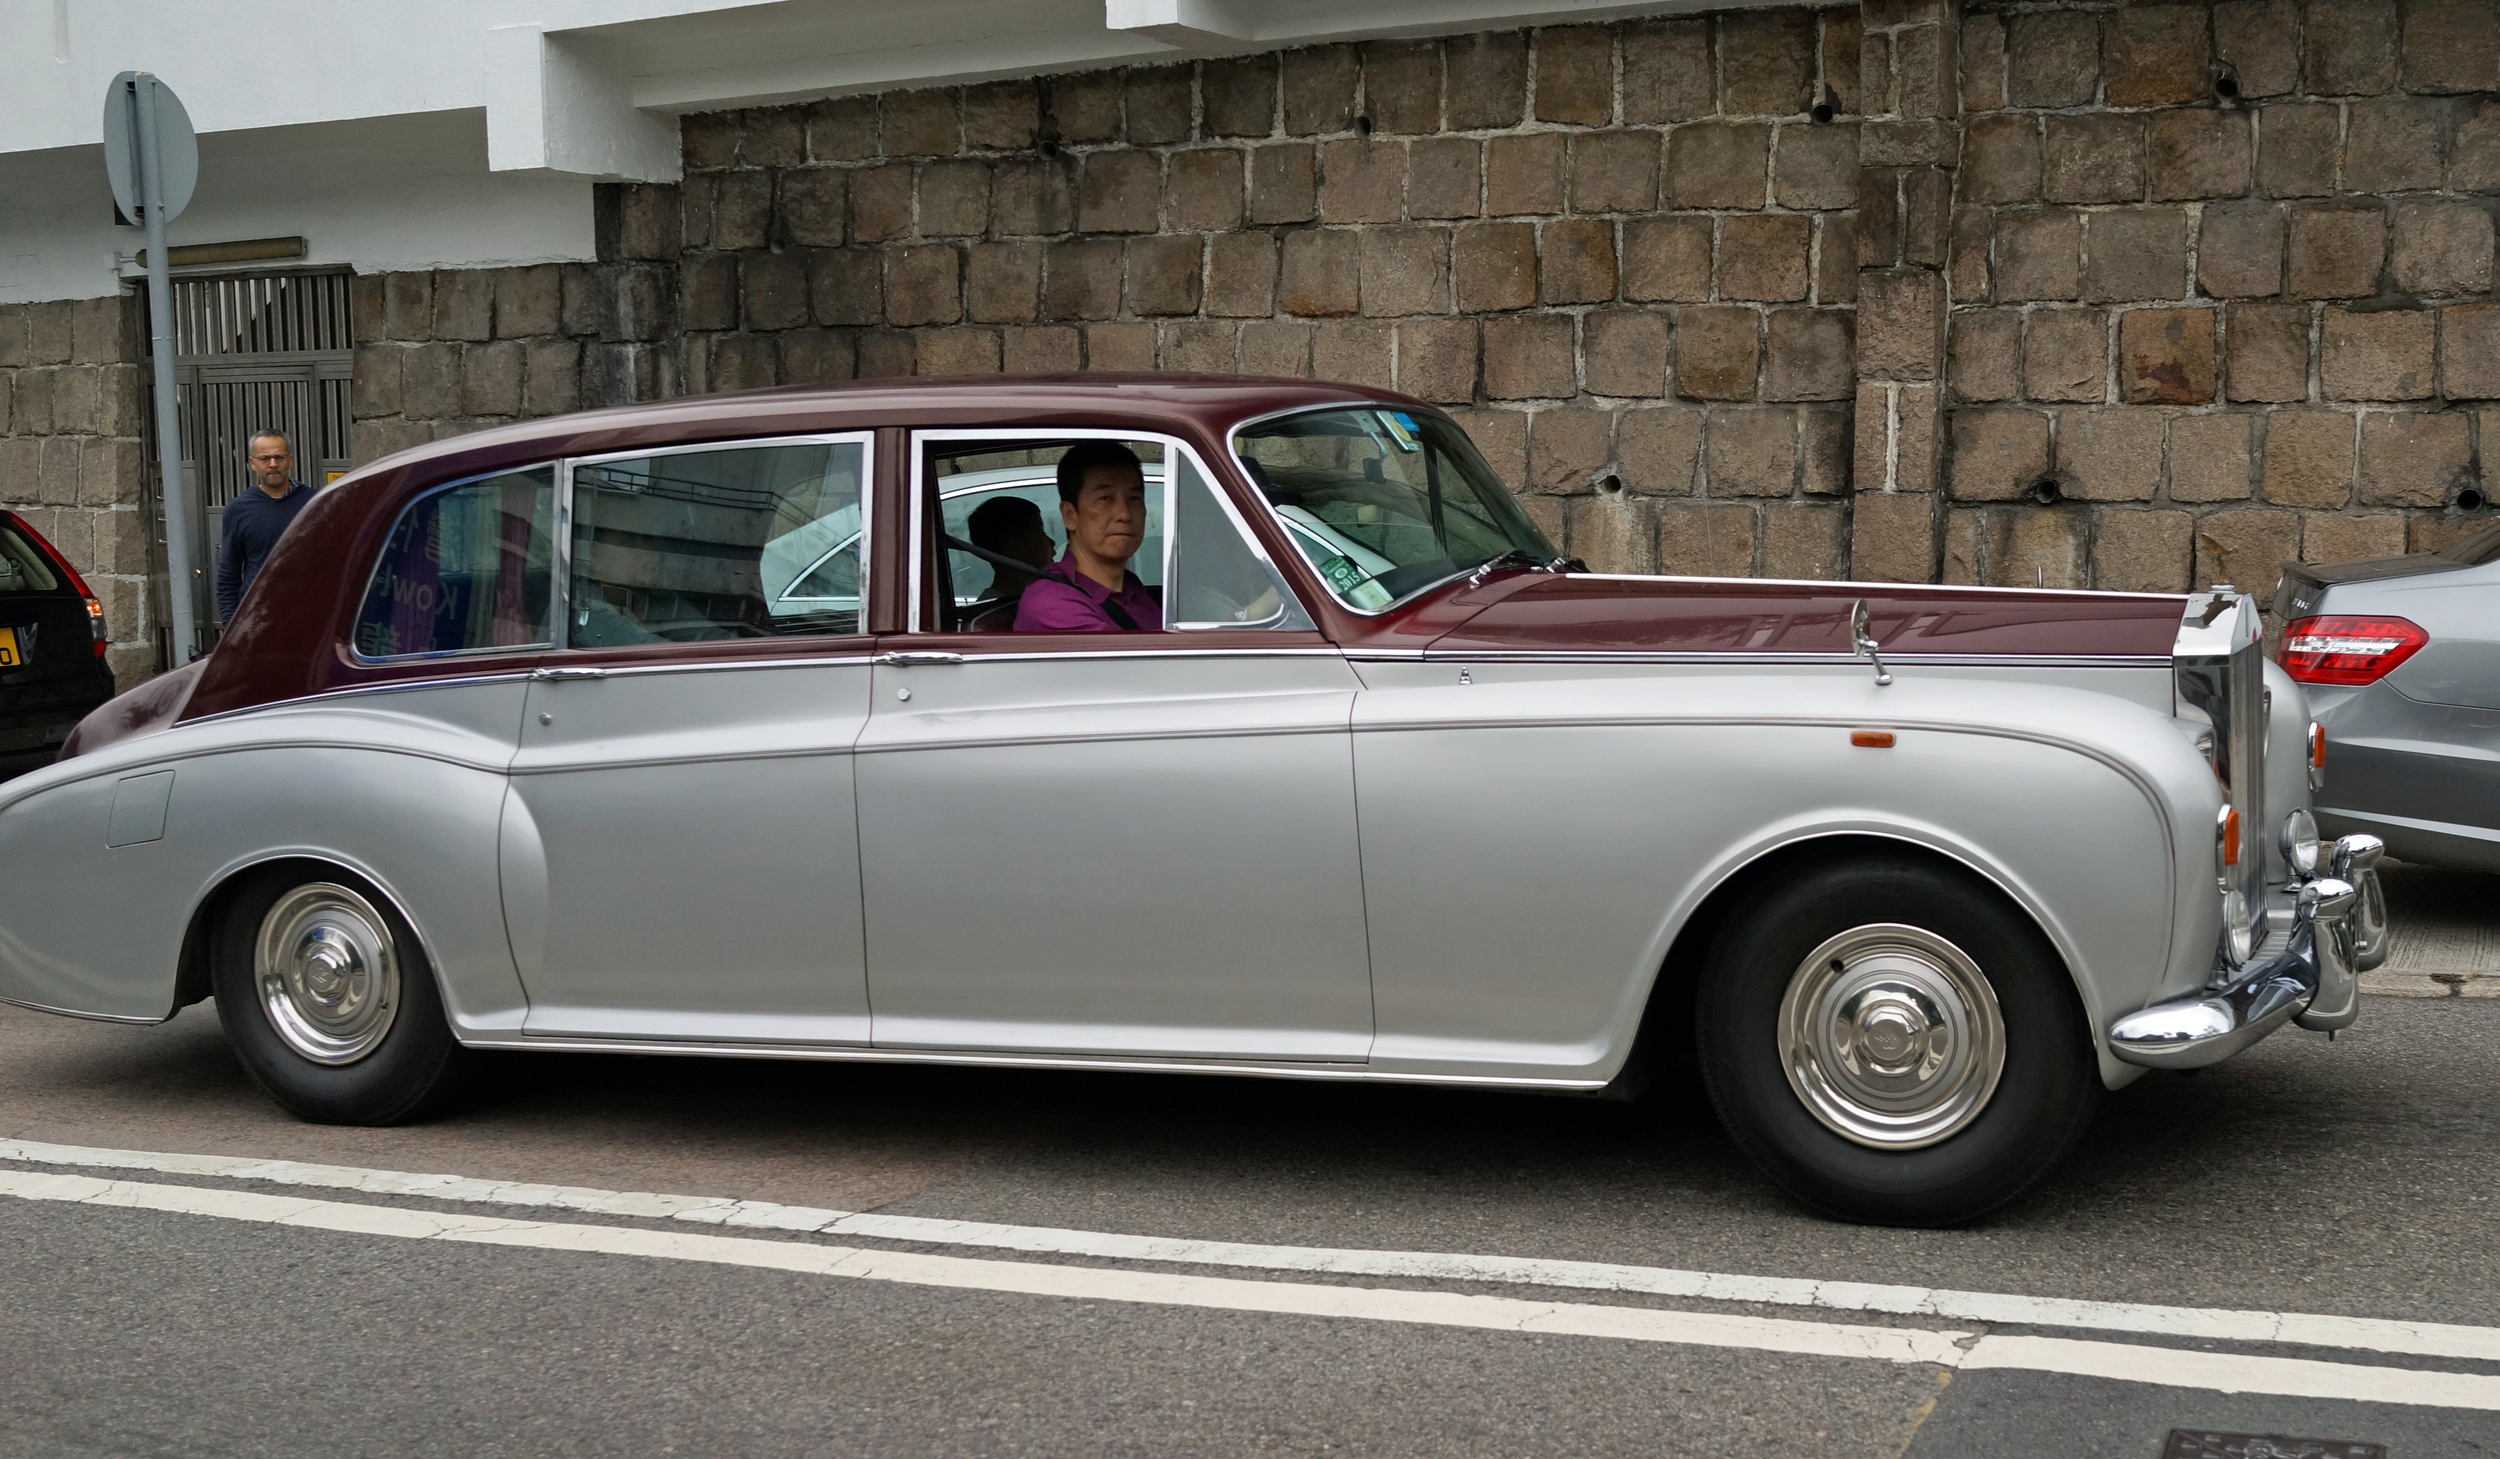 What a beautiful old Rolls Royce spotted at one of my favourite haunts, the Hong Kong Country Club and I was delighted to see a large family in it and really enjoying the ride - brilliant.